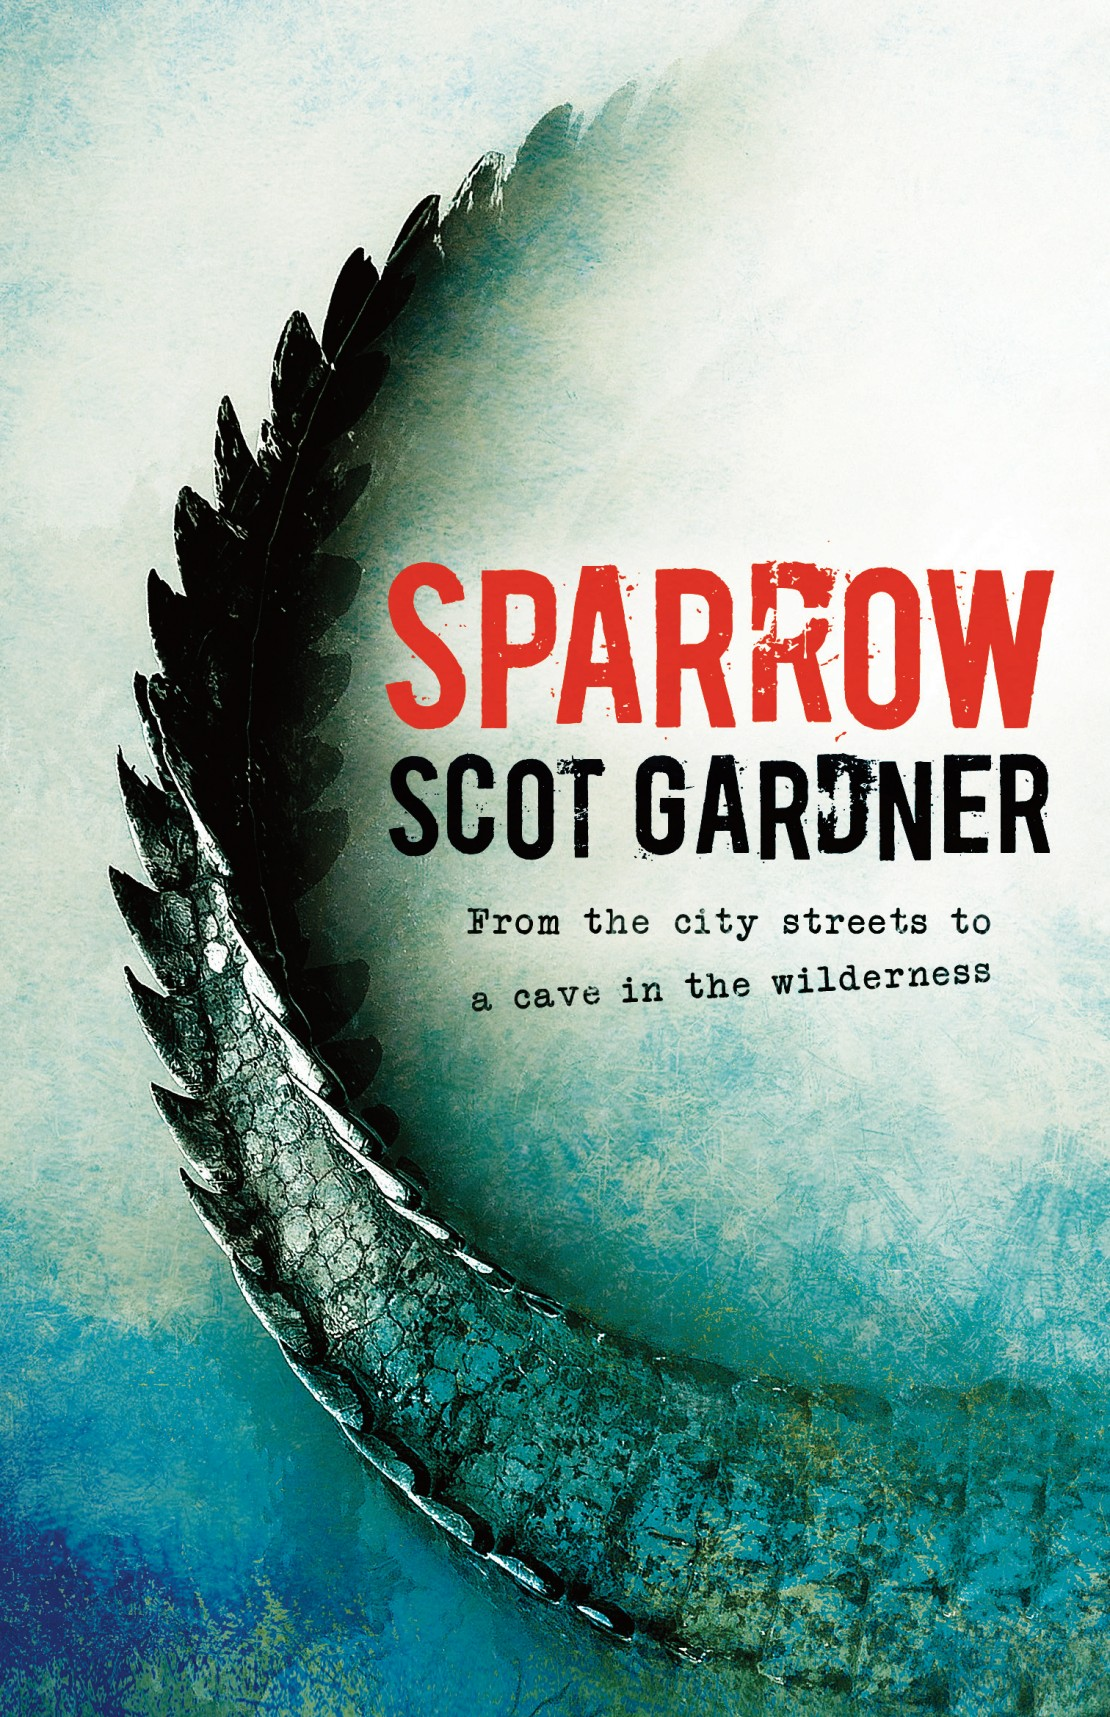 Sparrow by Scot Gardner book cover